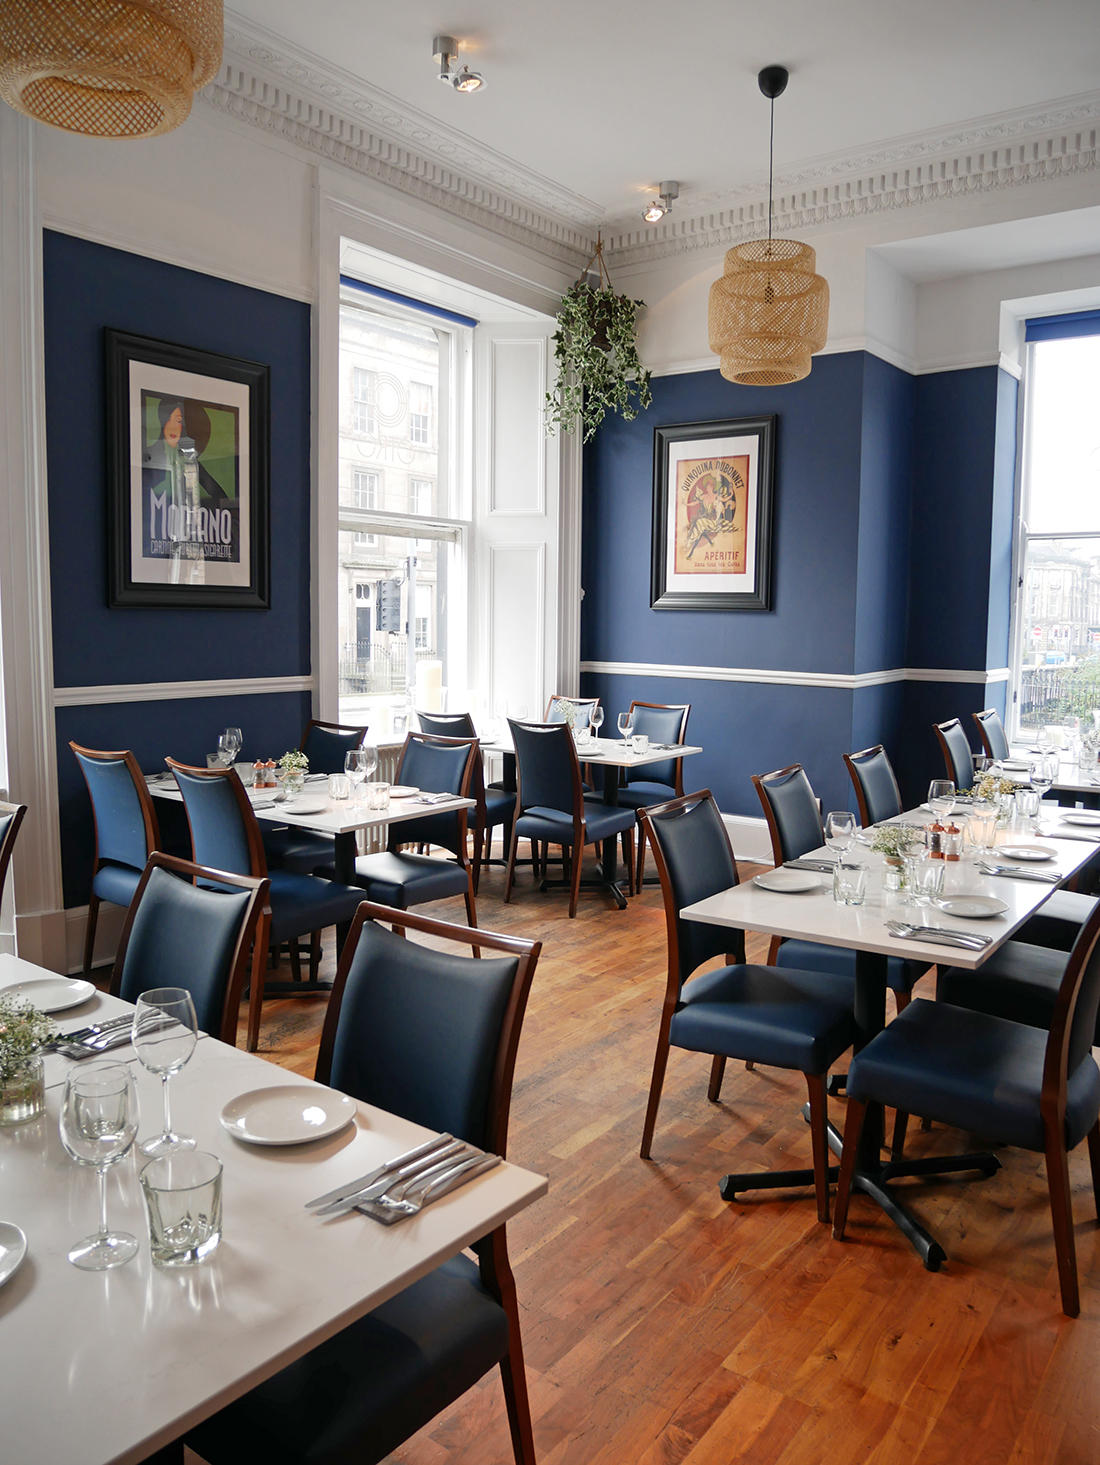 otro restaurant edinburgh main dining room 1.jpg